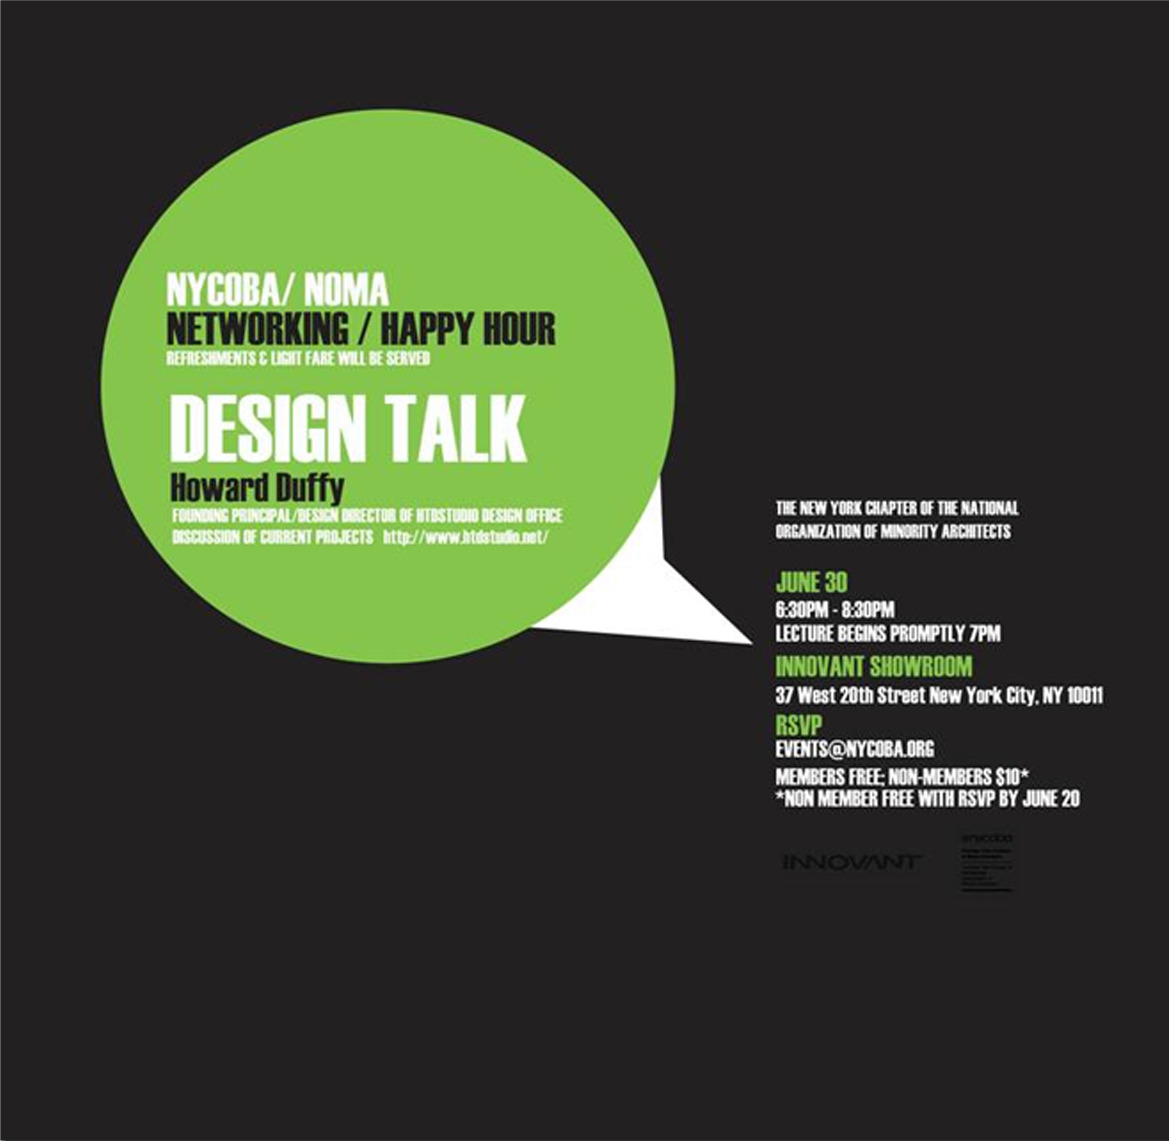 "Innovant Hosts ""Design Talk"" with Howard Duffy 6:30 - 8:30     rsvp by June 20 for free admission: events@nycoba.com"